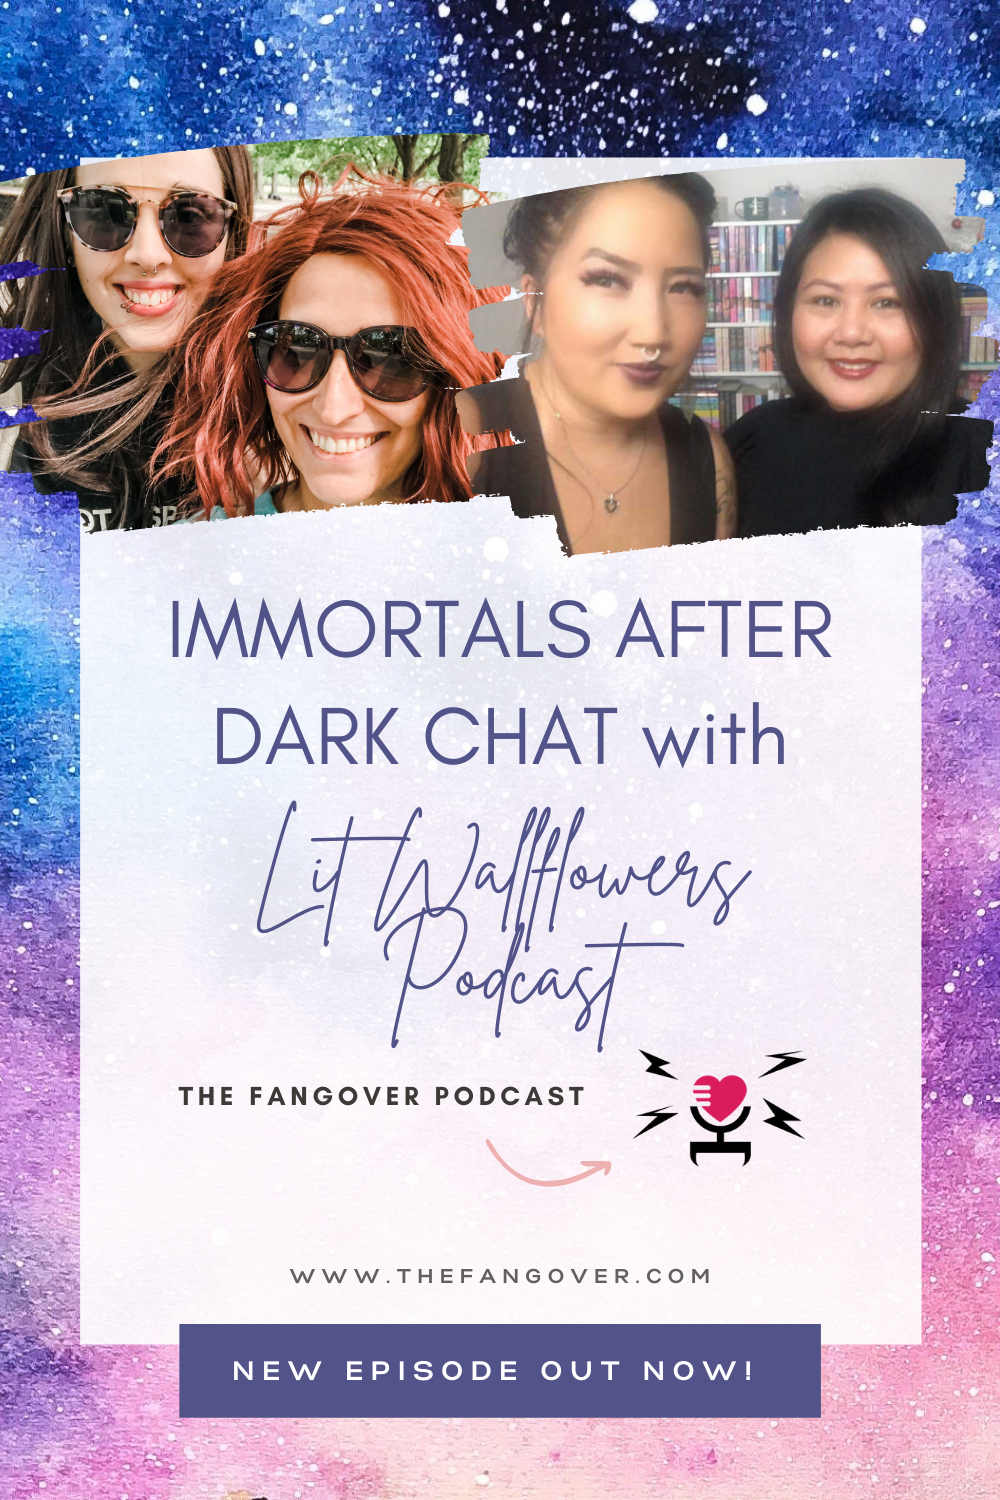 S2 E17 Immortals After Dark Chat with Lit Wallflowers Podcast